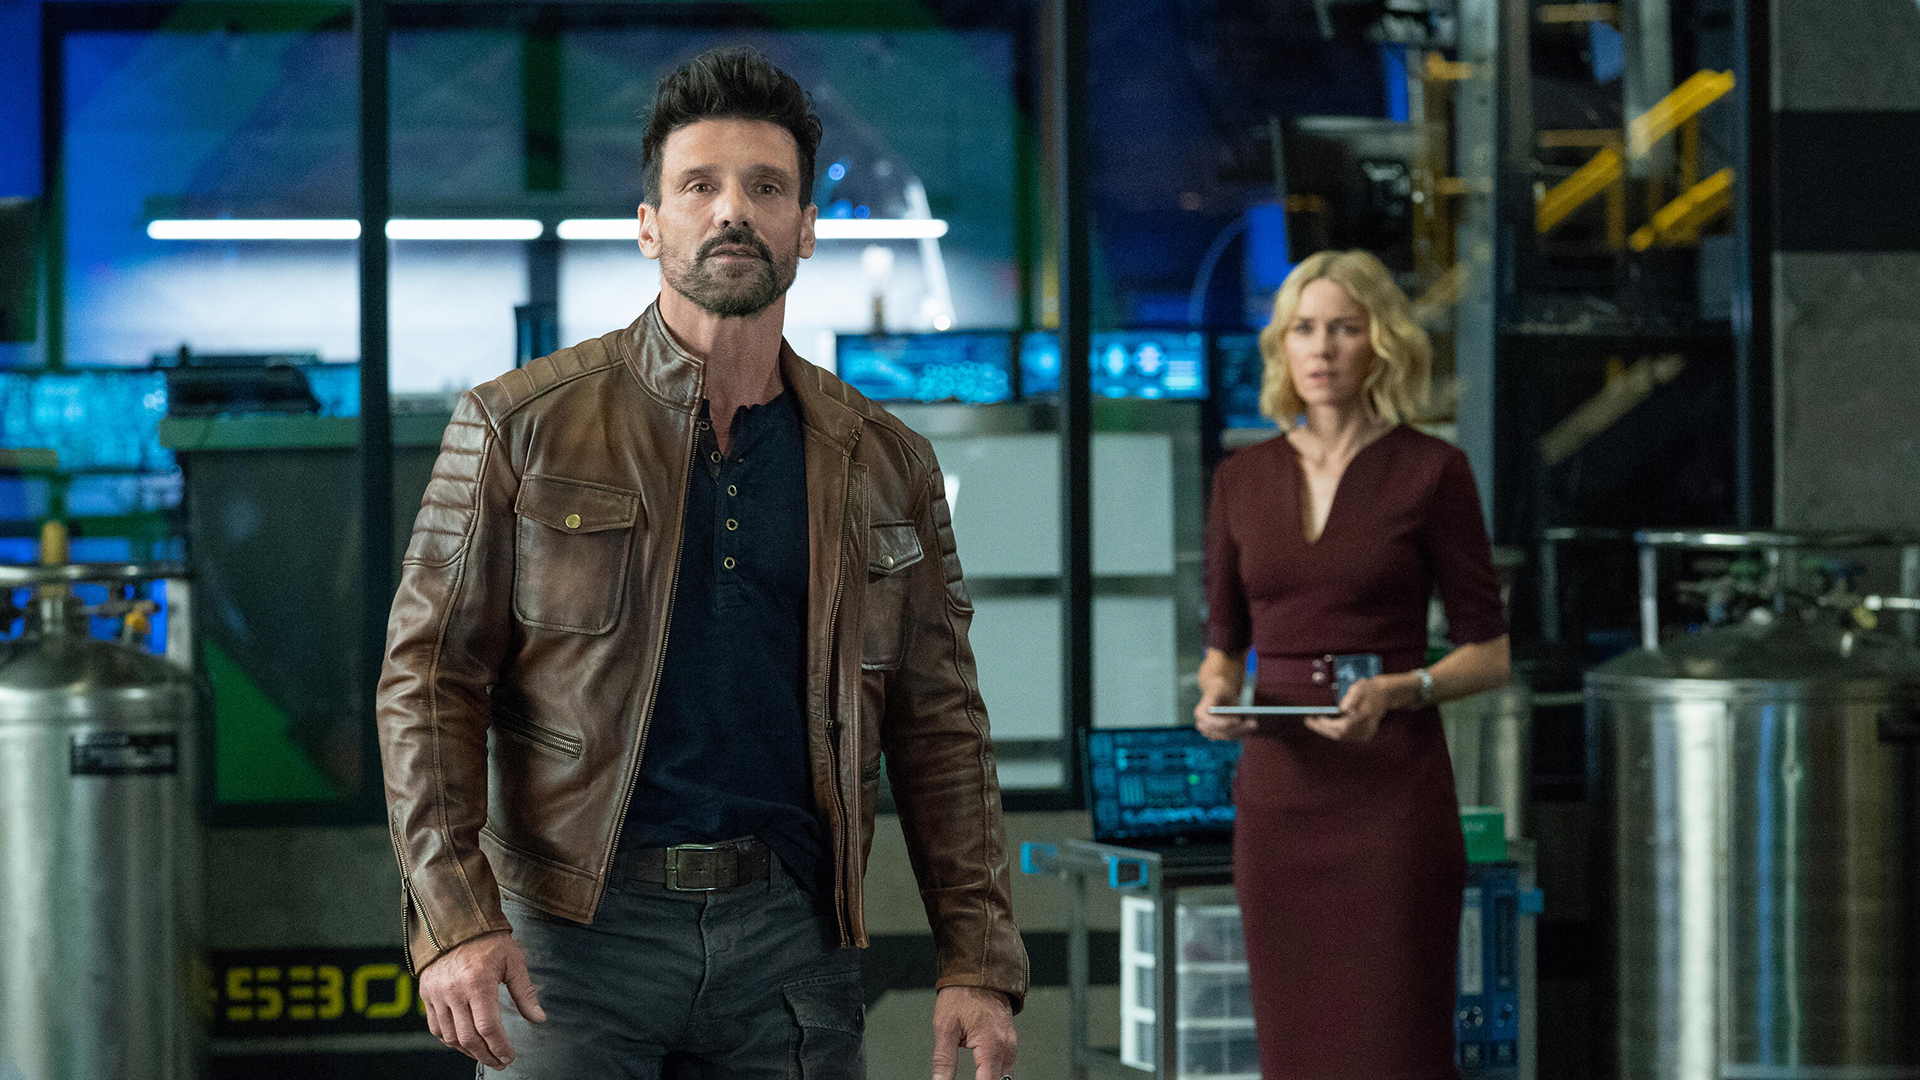 Frank Grillo can't stop dying in Hulu's time loop thriller 'Boss Level'